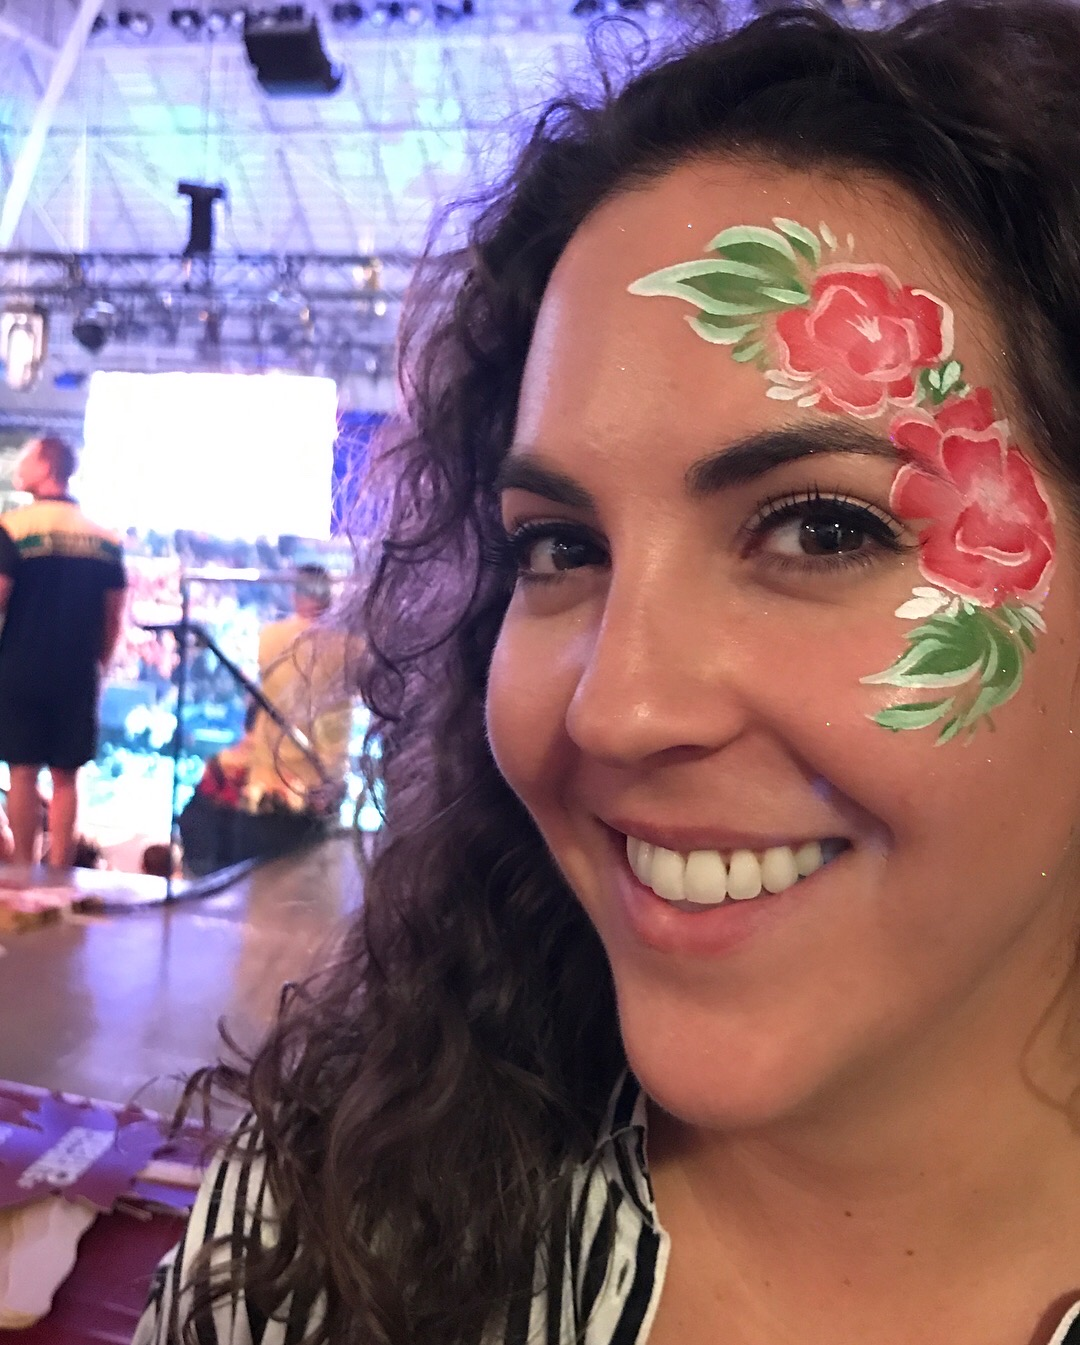 Pink flowers painted on woman's face